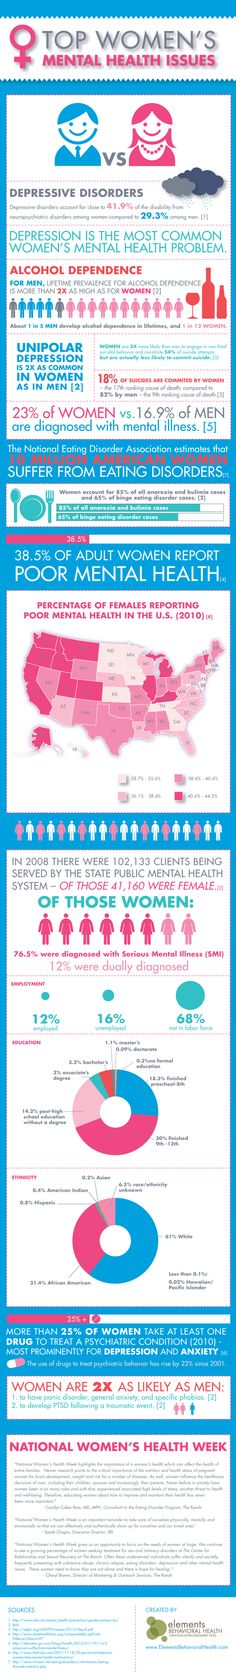 Learn about the major mental health issues that are affecting women!